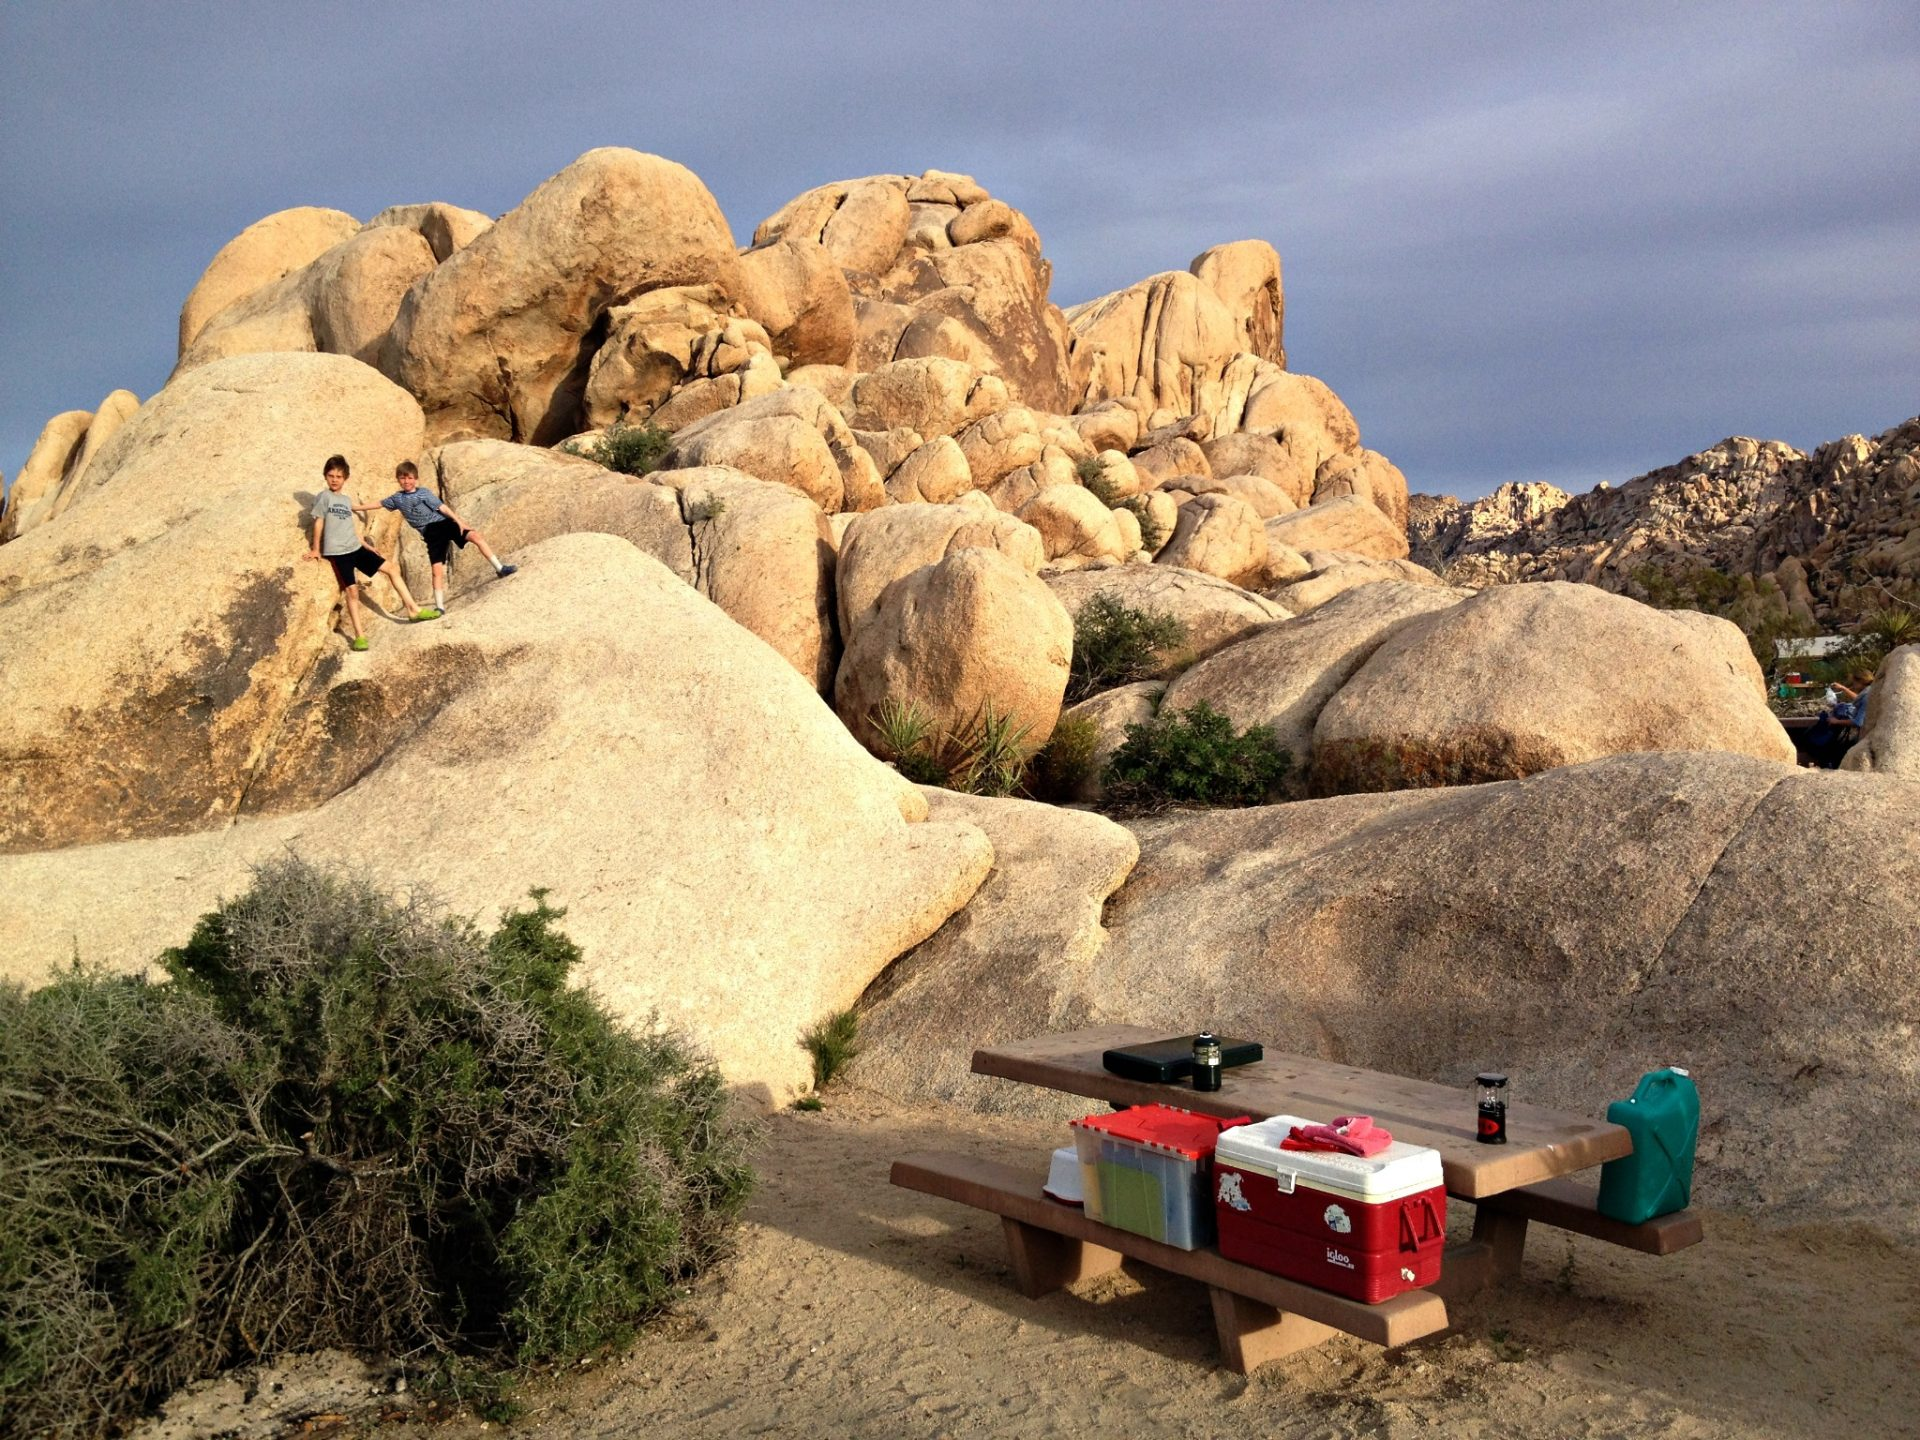 Joshua Tree National Park Camping India Cove bouldering